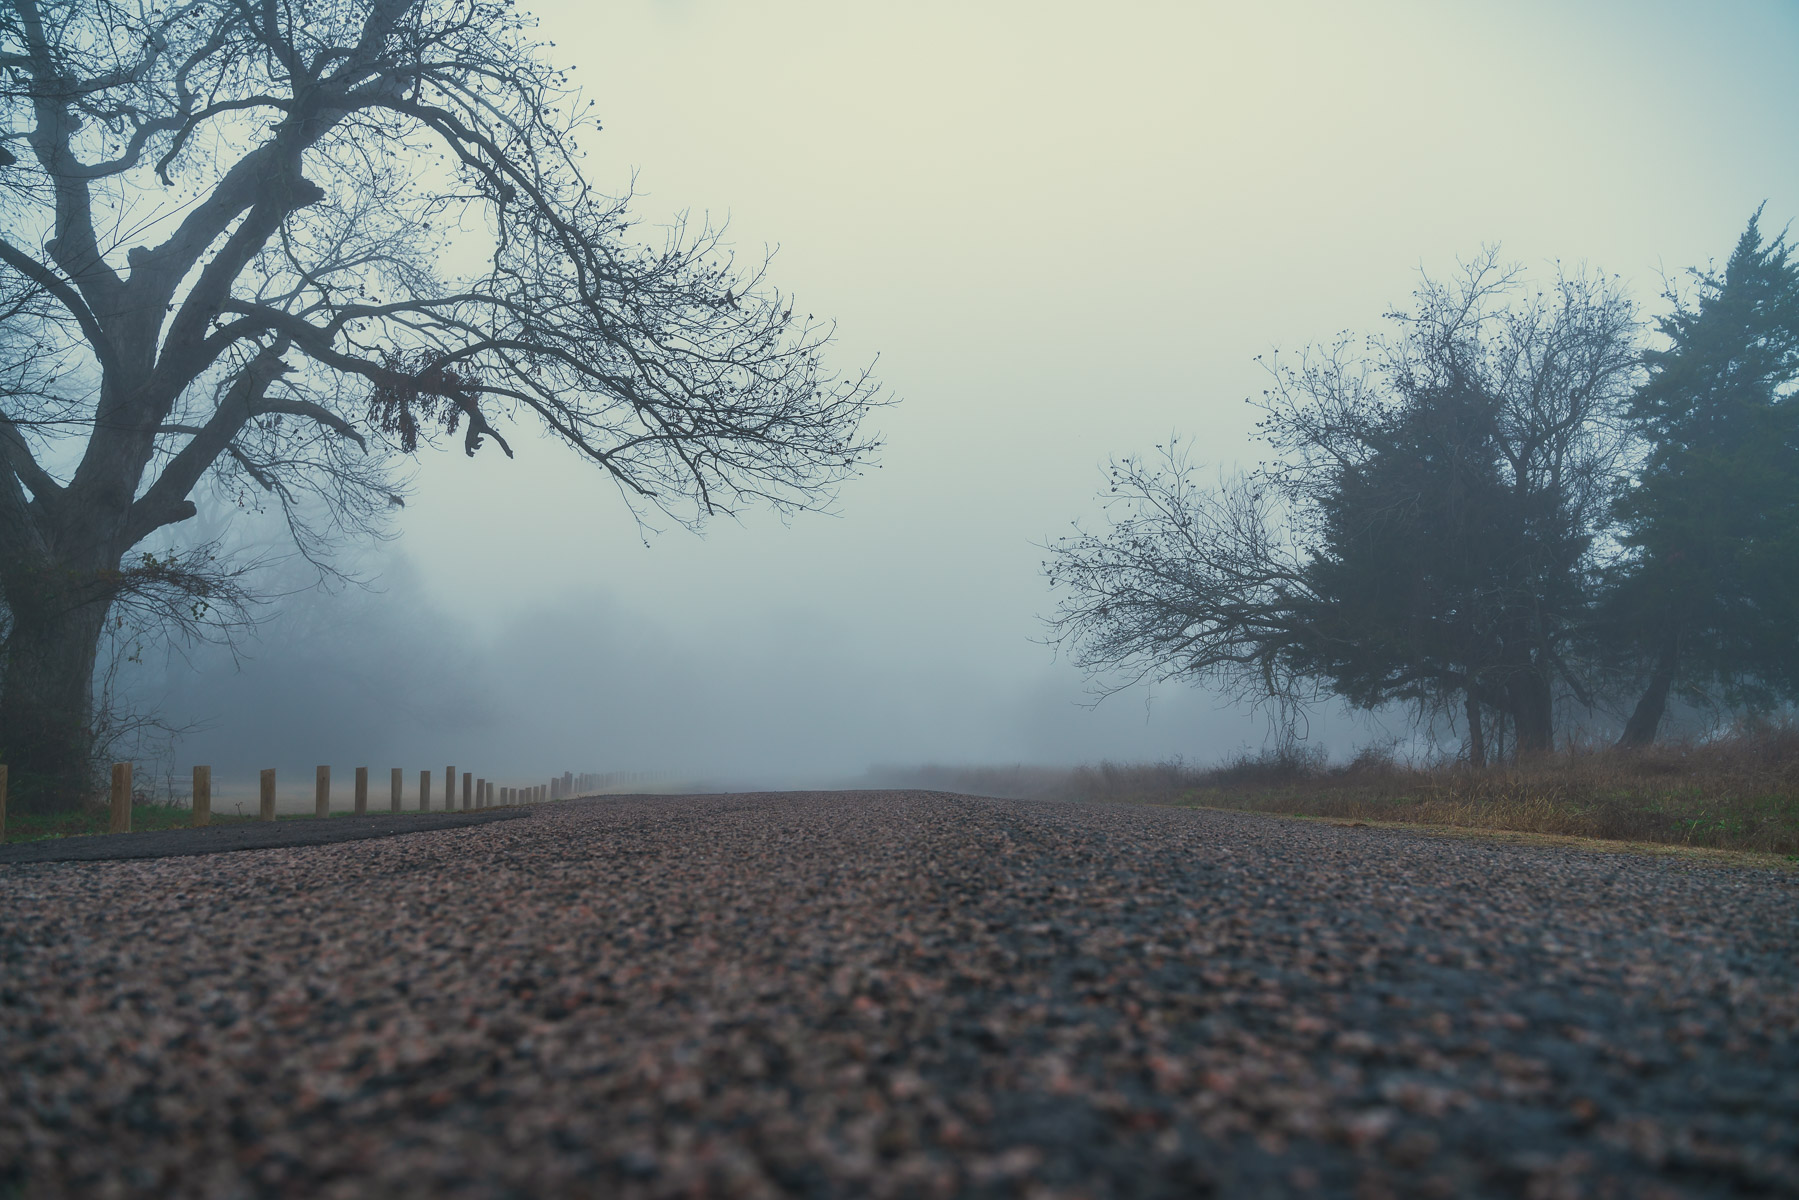 A foggy morning at McKinney, Texas' Erwin Park.